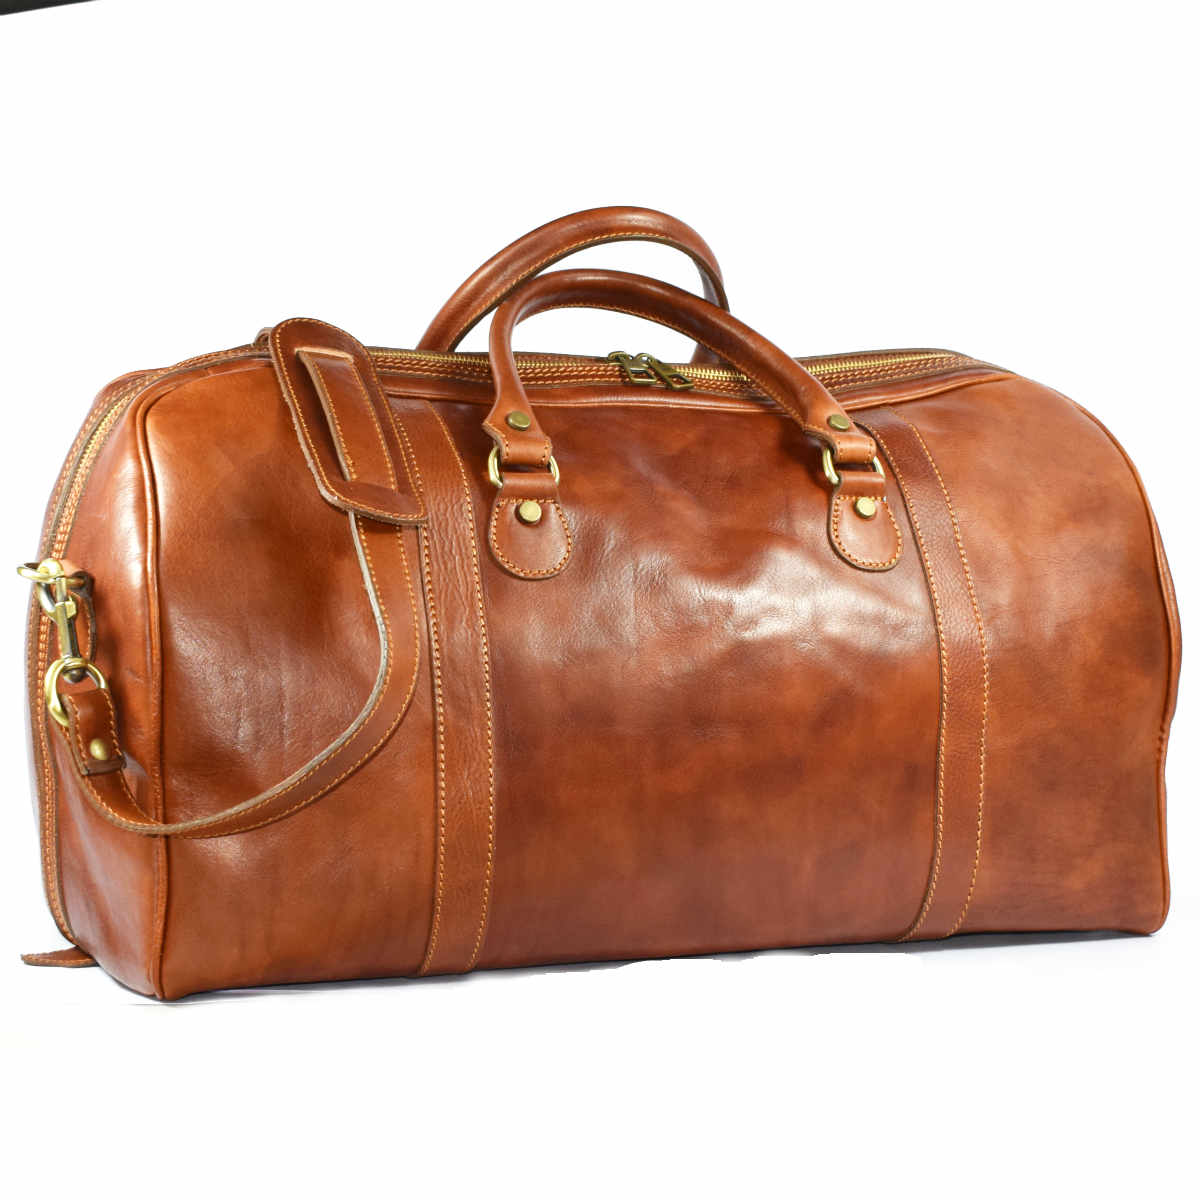 24038 TRAVEL BAG by Bottega Fiorentina